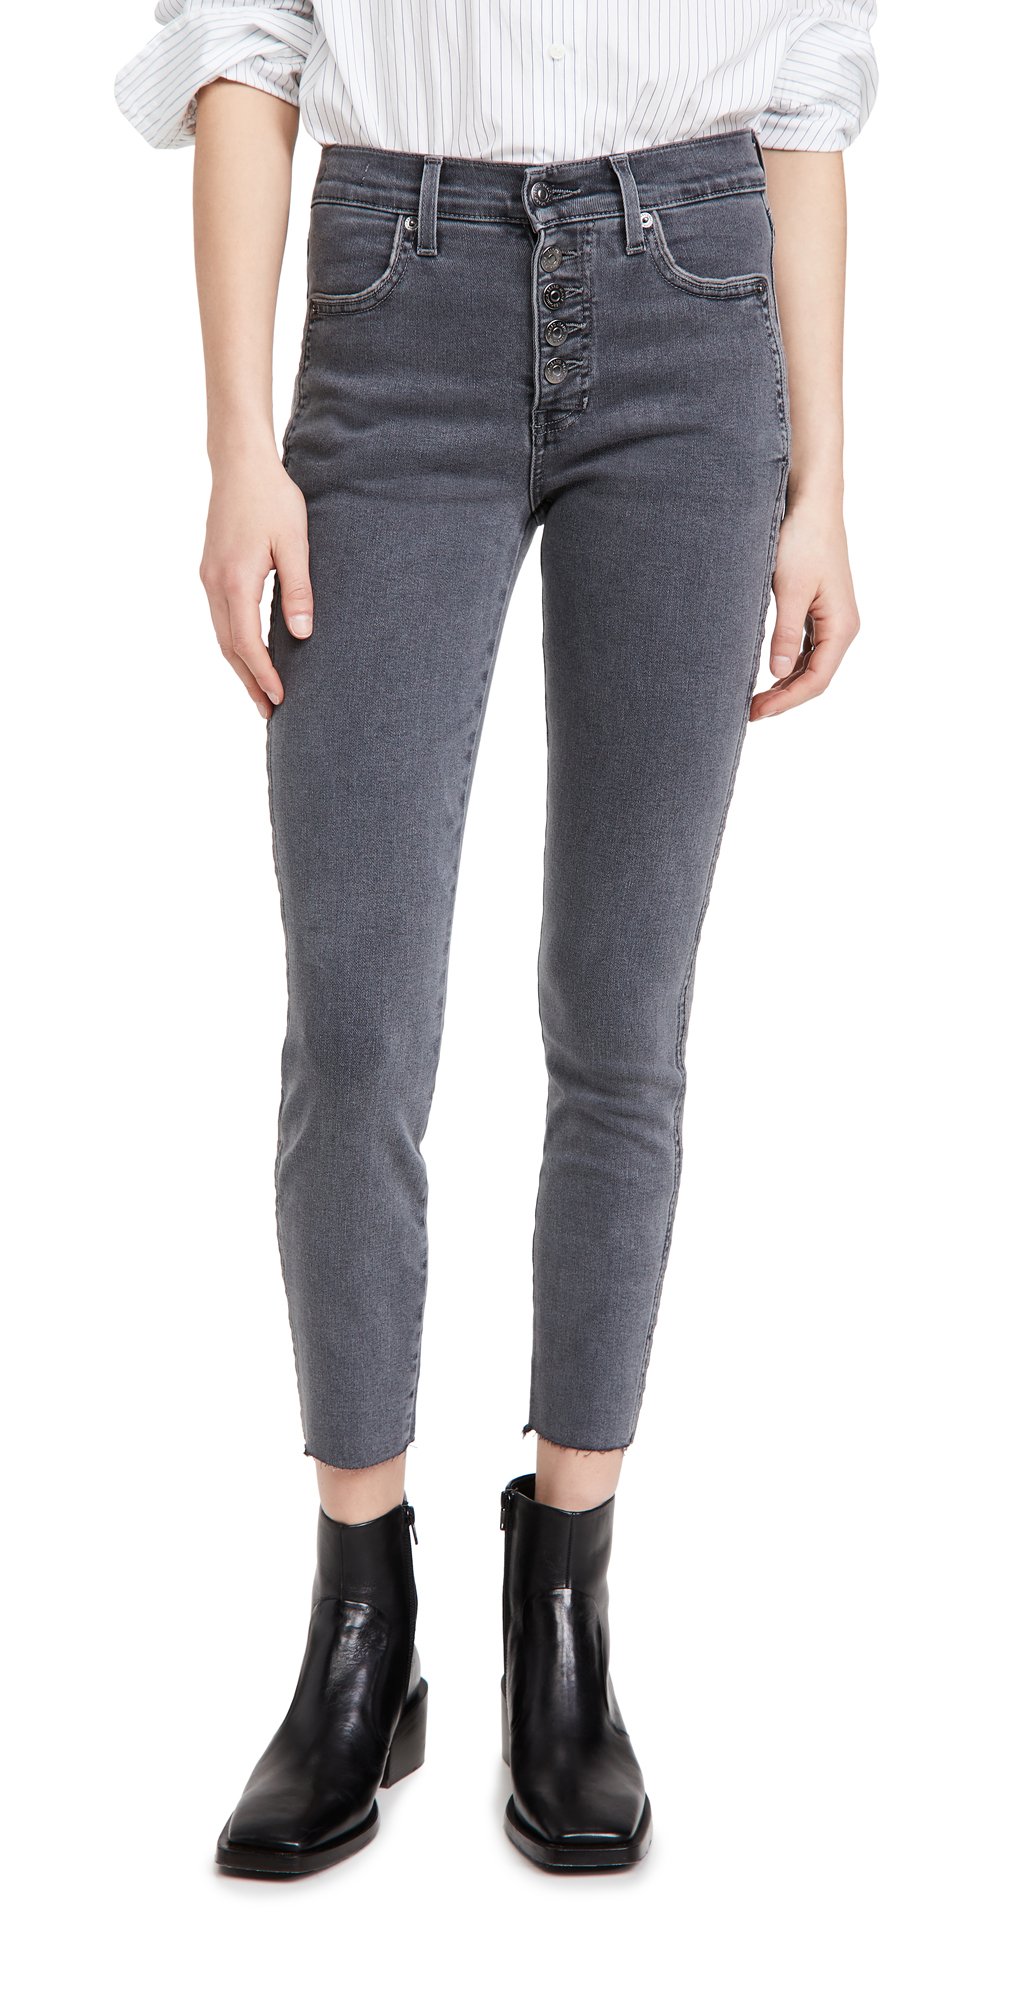 Veronica Beard Jean Debbie High Rise Jeans with Piping and Raw Hem